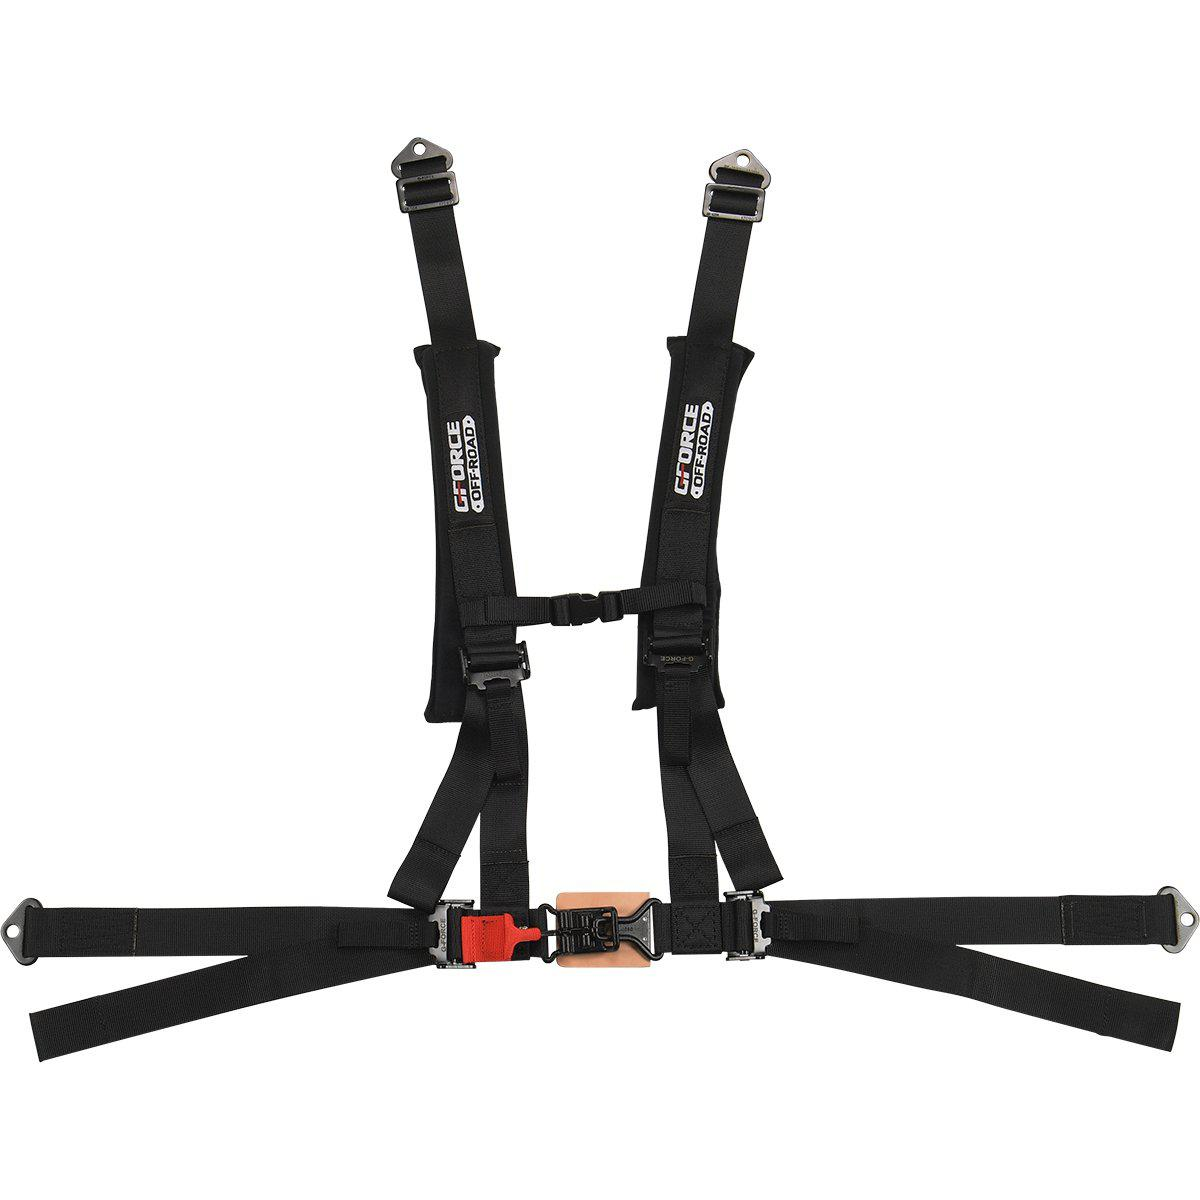 UTV 4-POINT 2 INCH LATCH & LINK OFF-ROAD HARNESS BLACK-Harness-G-Force-Black Market UTV